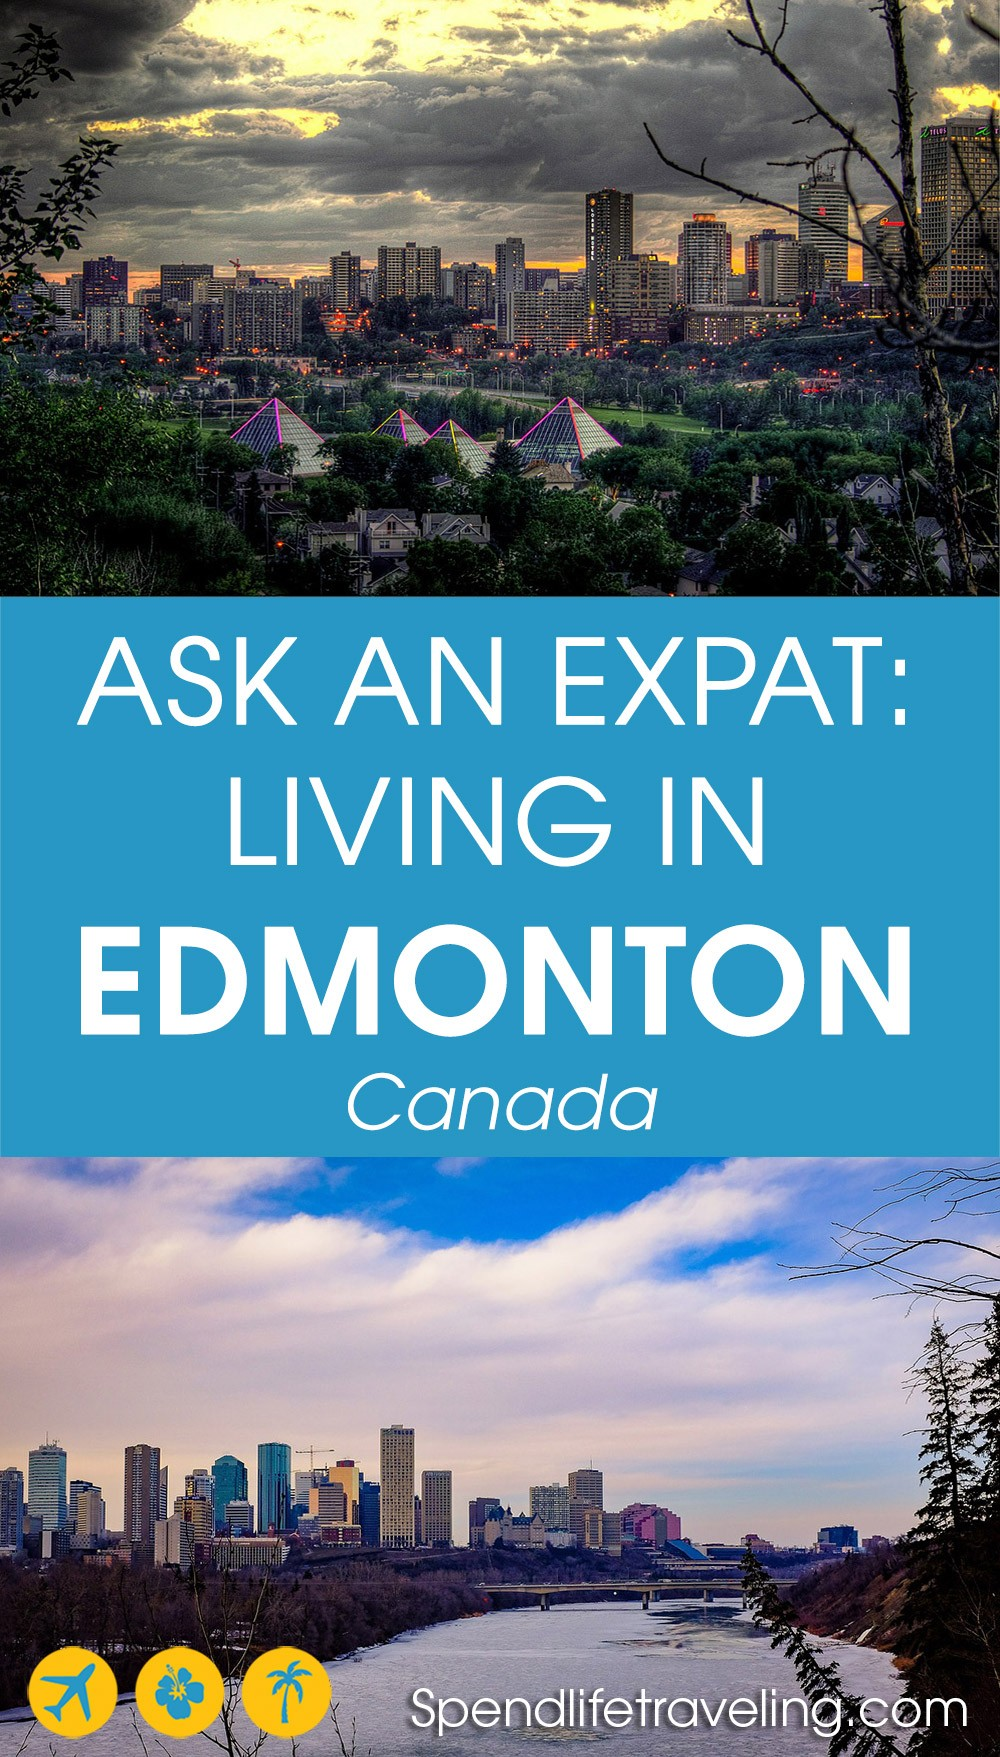 Interview with an #expat about moving to and living in #Edmonton, Canada. #expatlife #moveabroad #movetoCanada